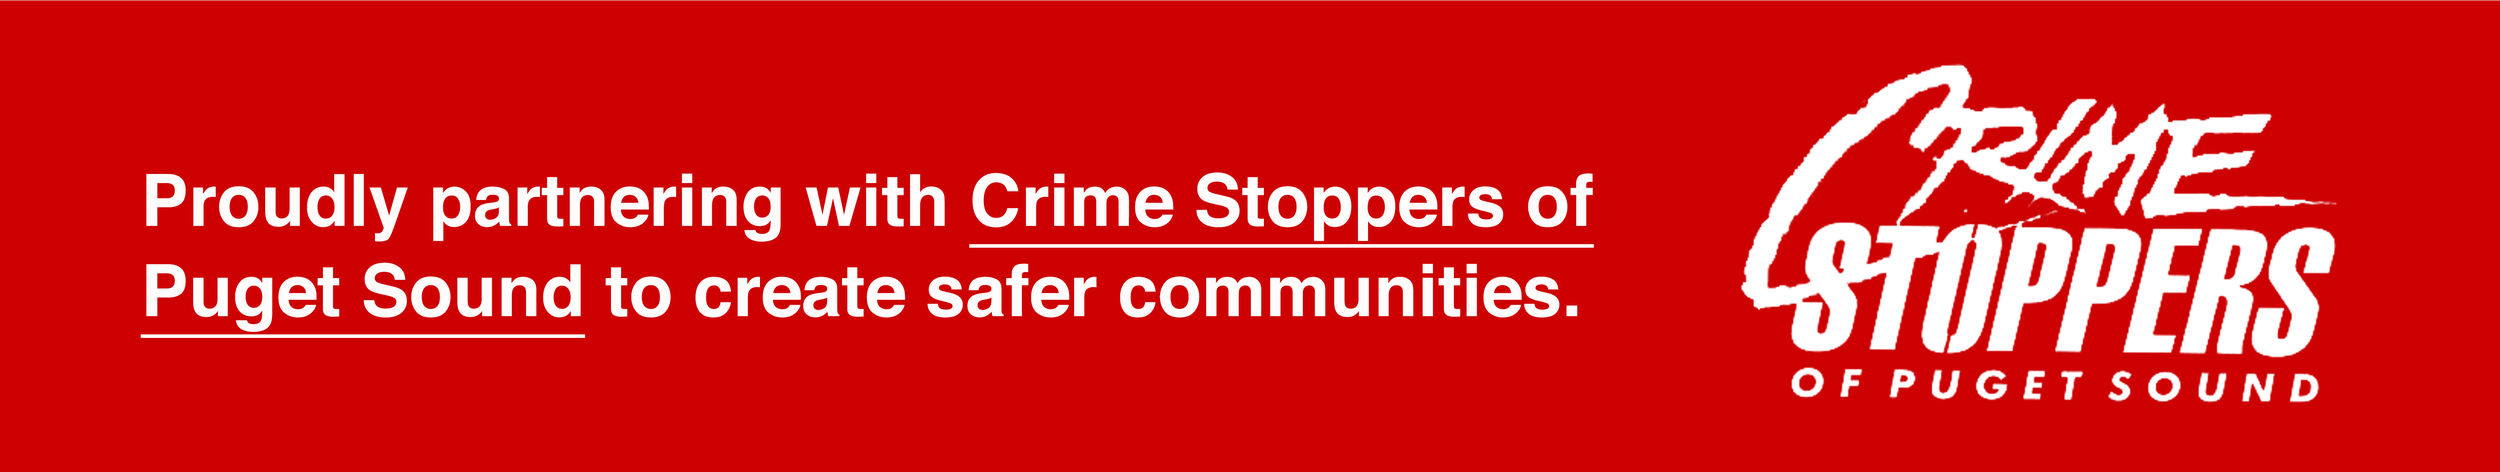 Crime-stoppers.png